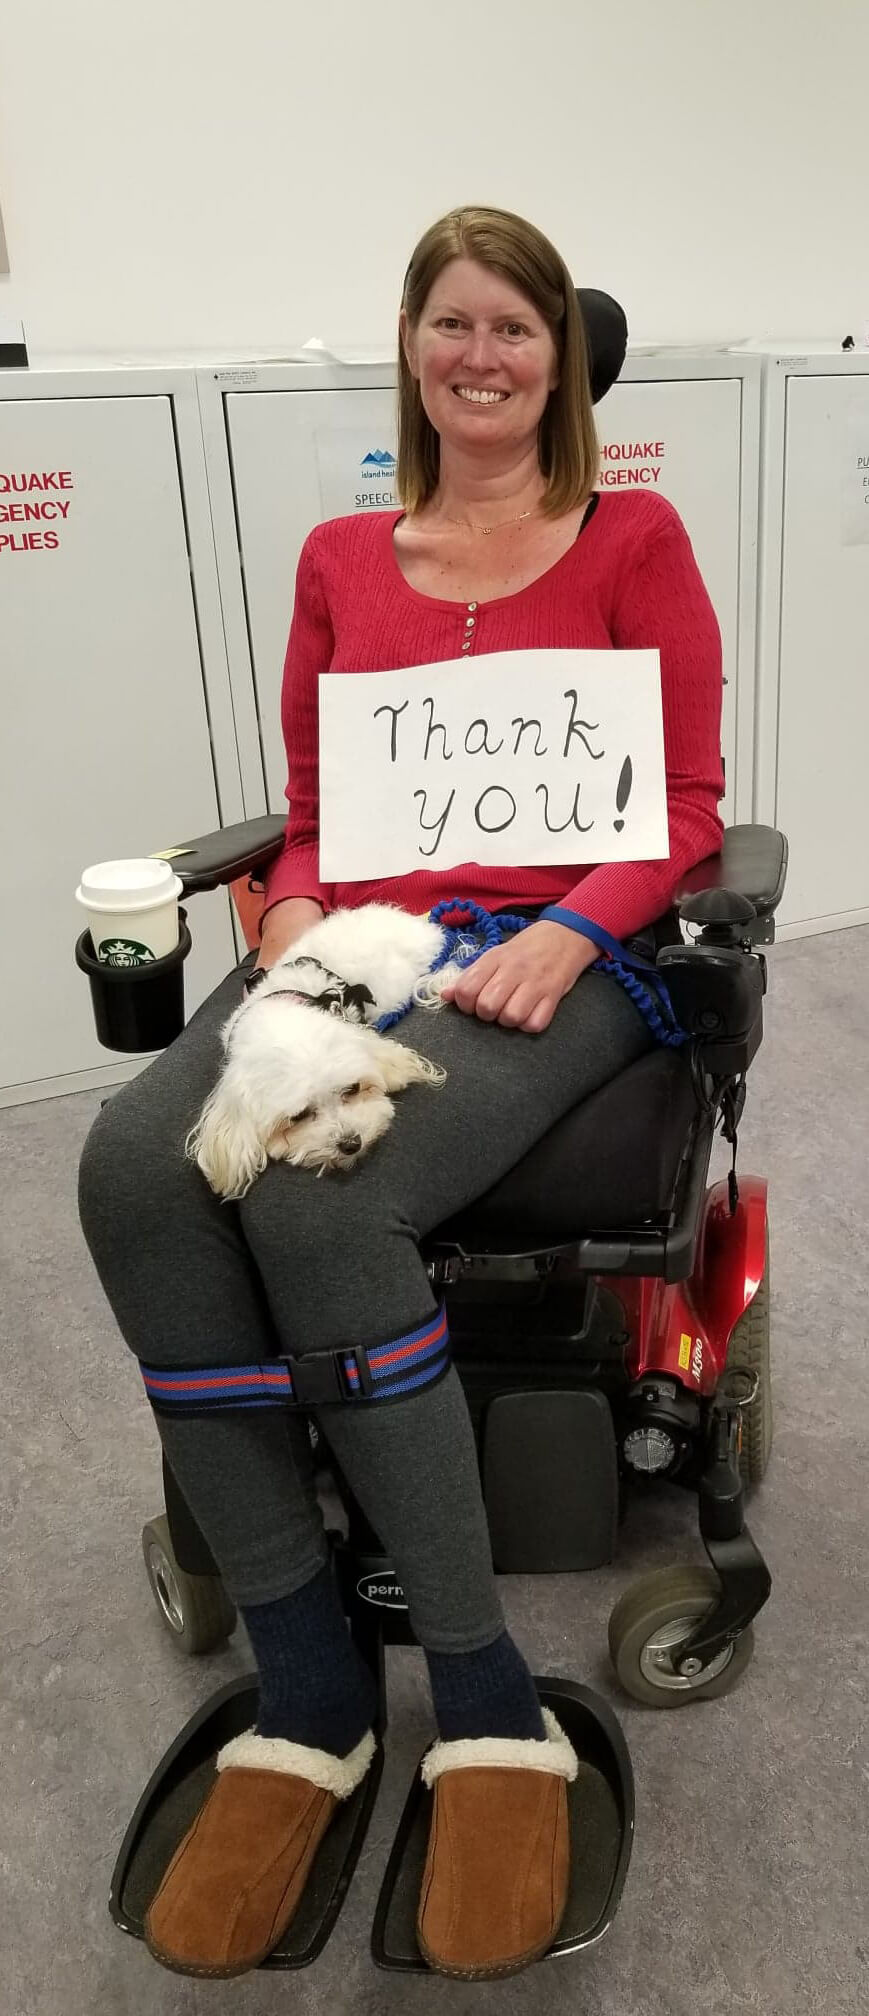 Picture woman in wheelchair smiling with dog on her lap, Thank you sign on her stomach, coffee and slippers